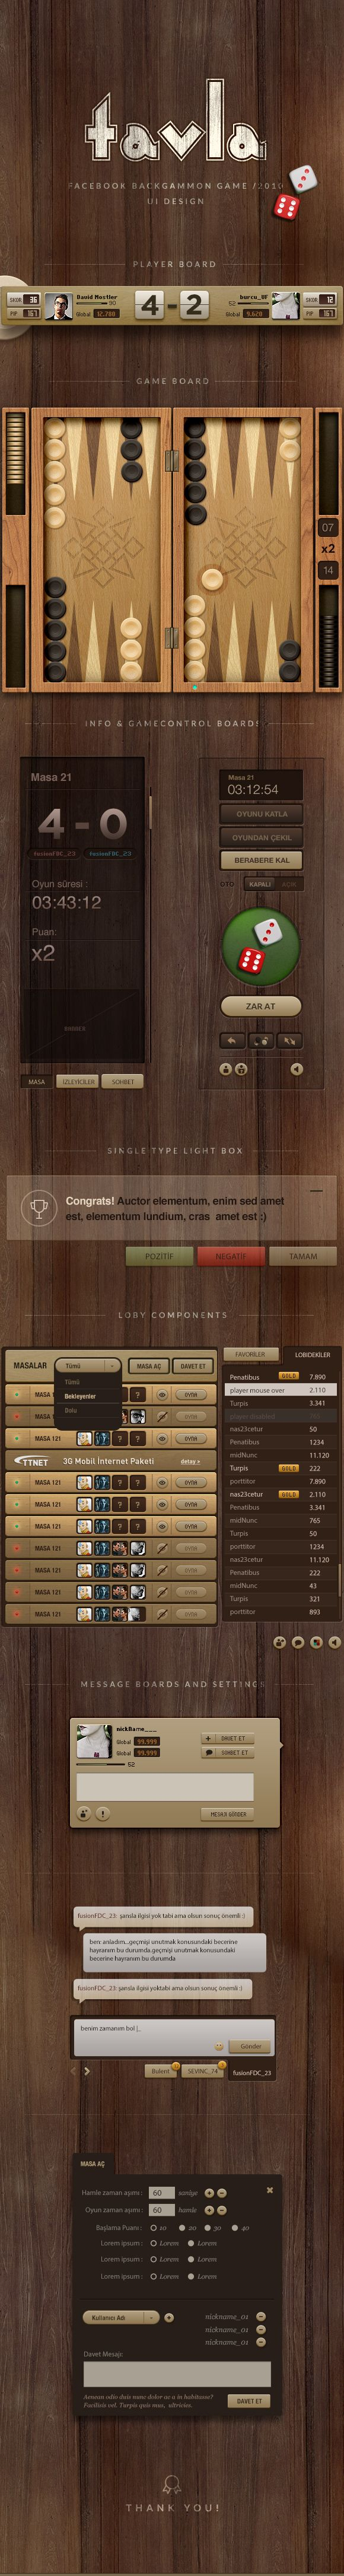 Backgammon game UI design.